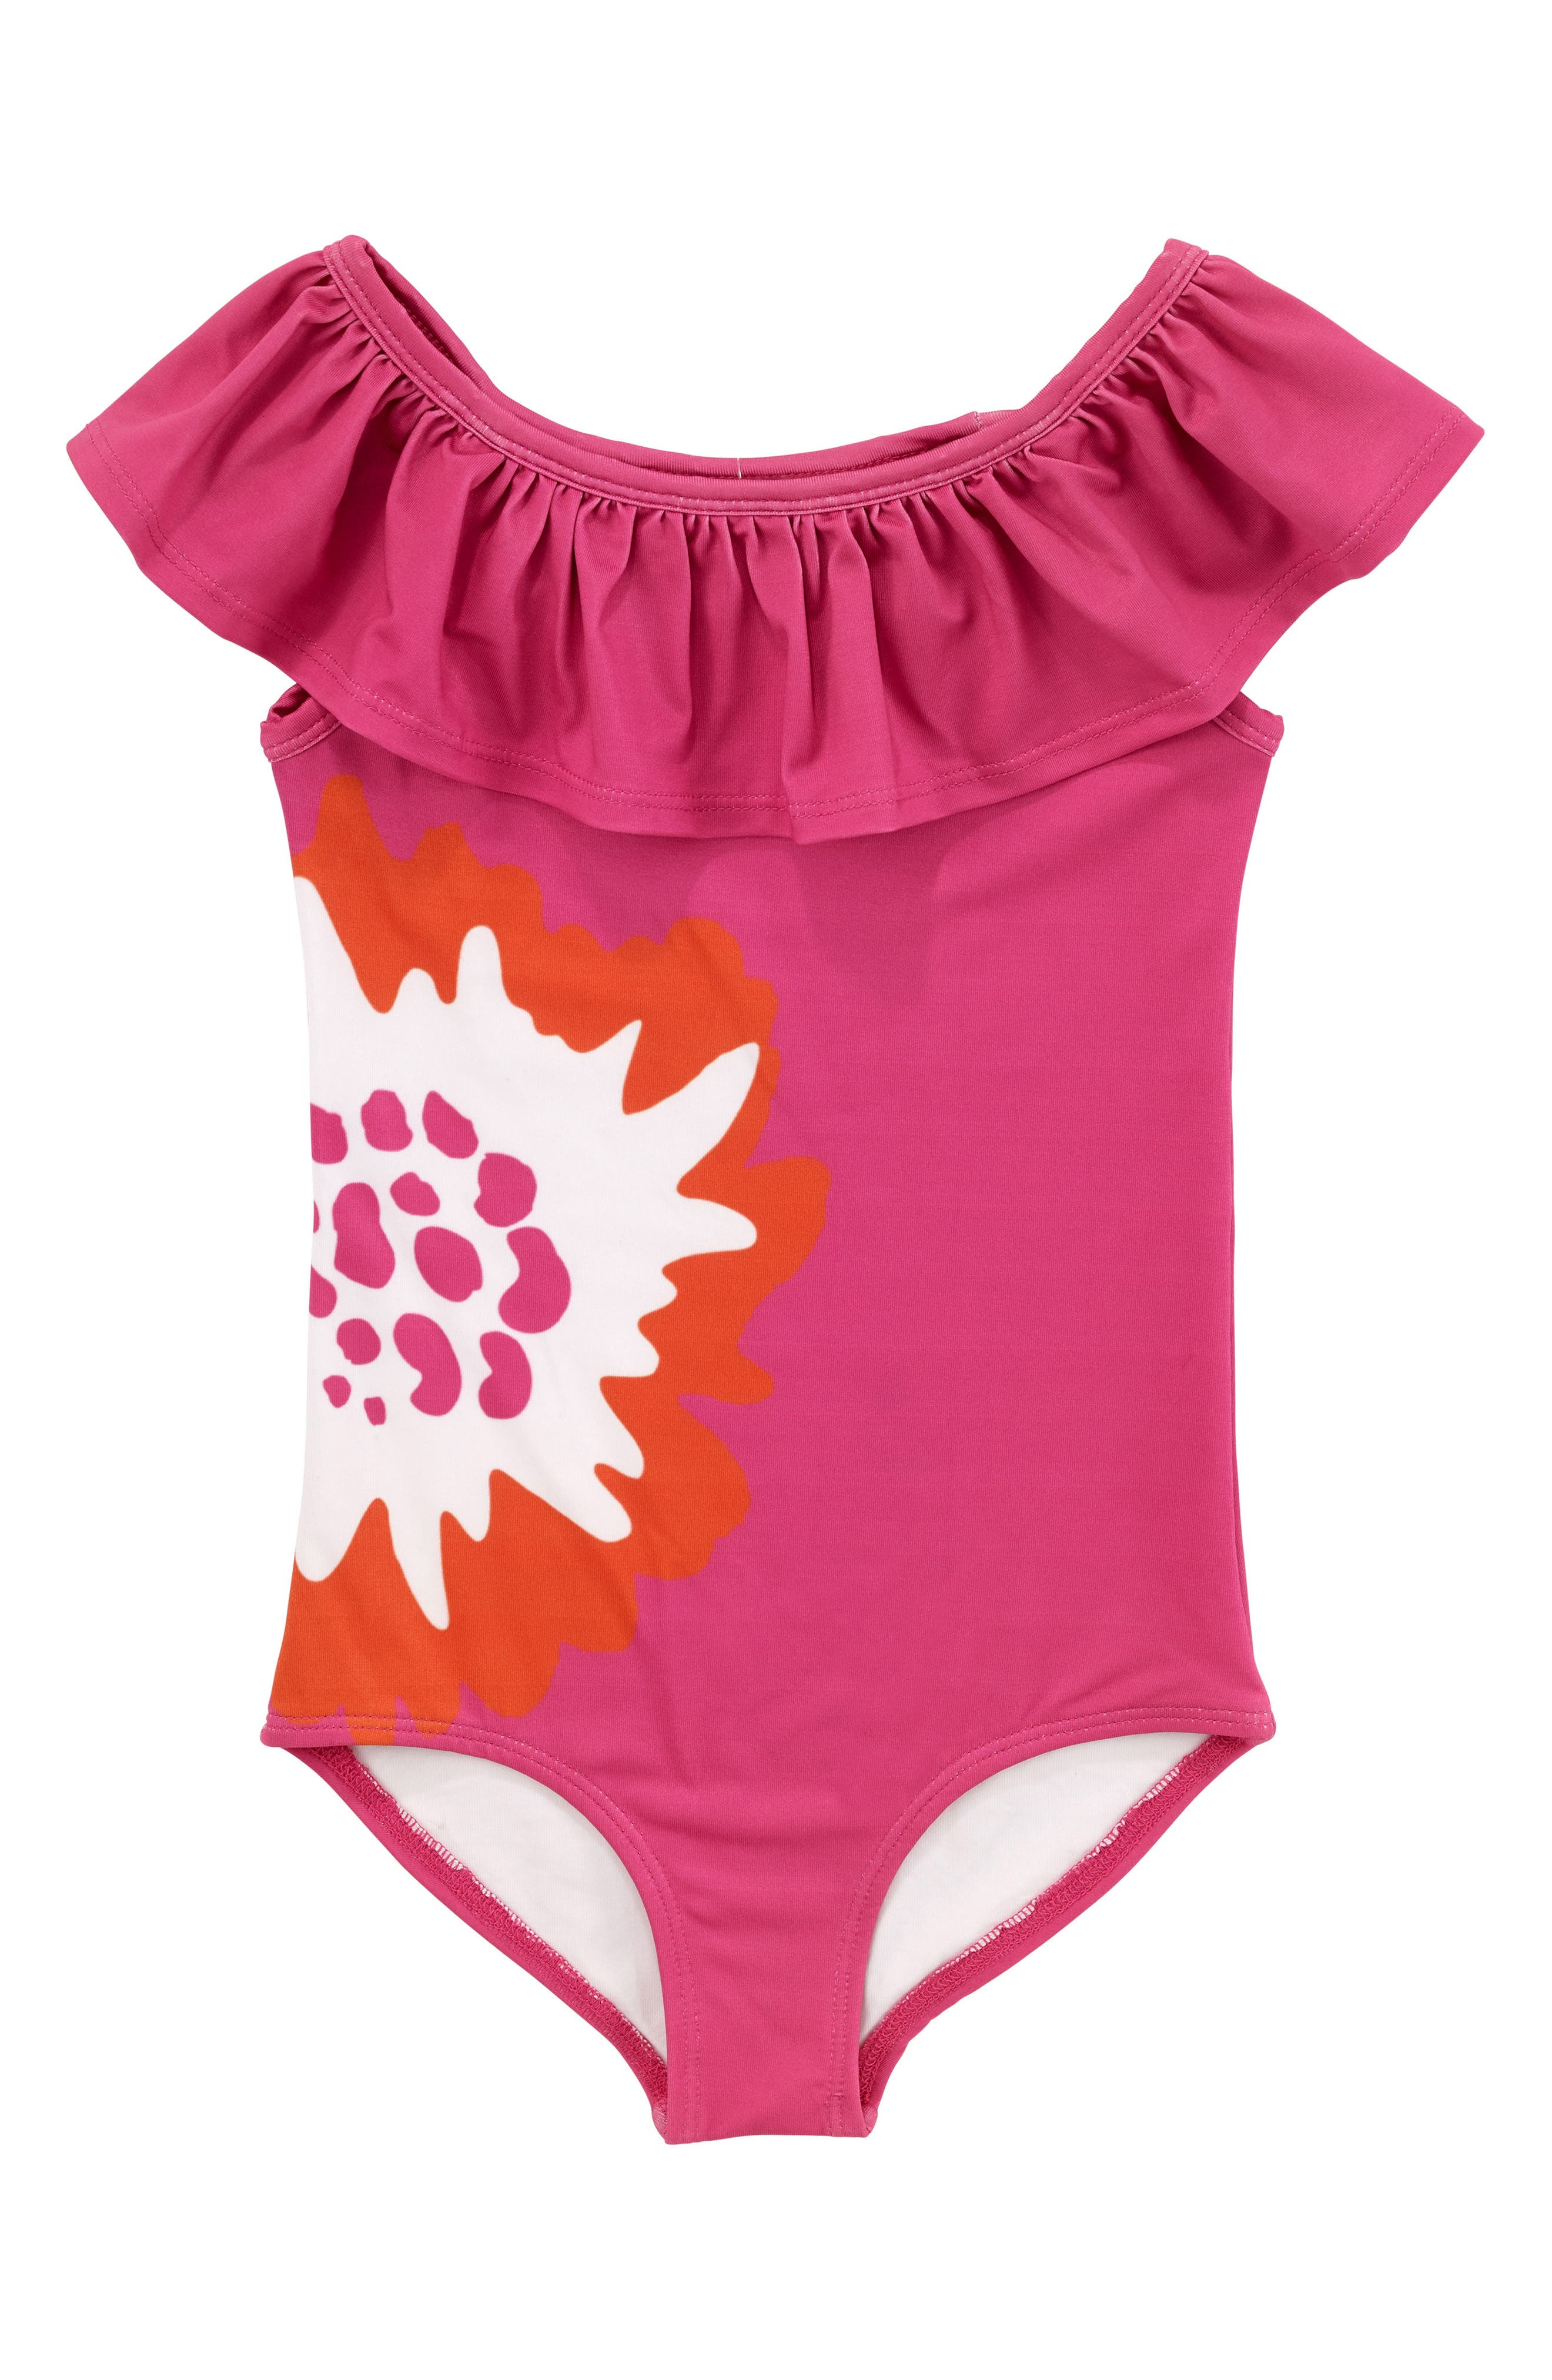 Main Image - Masasla Baby Coral Print One-Piece Swimsuit (Toddler Girls)